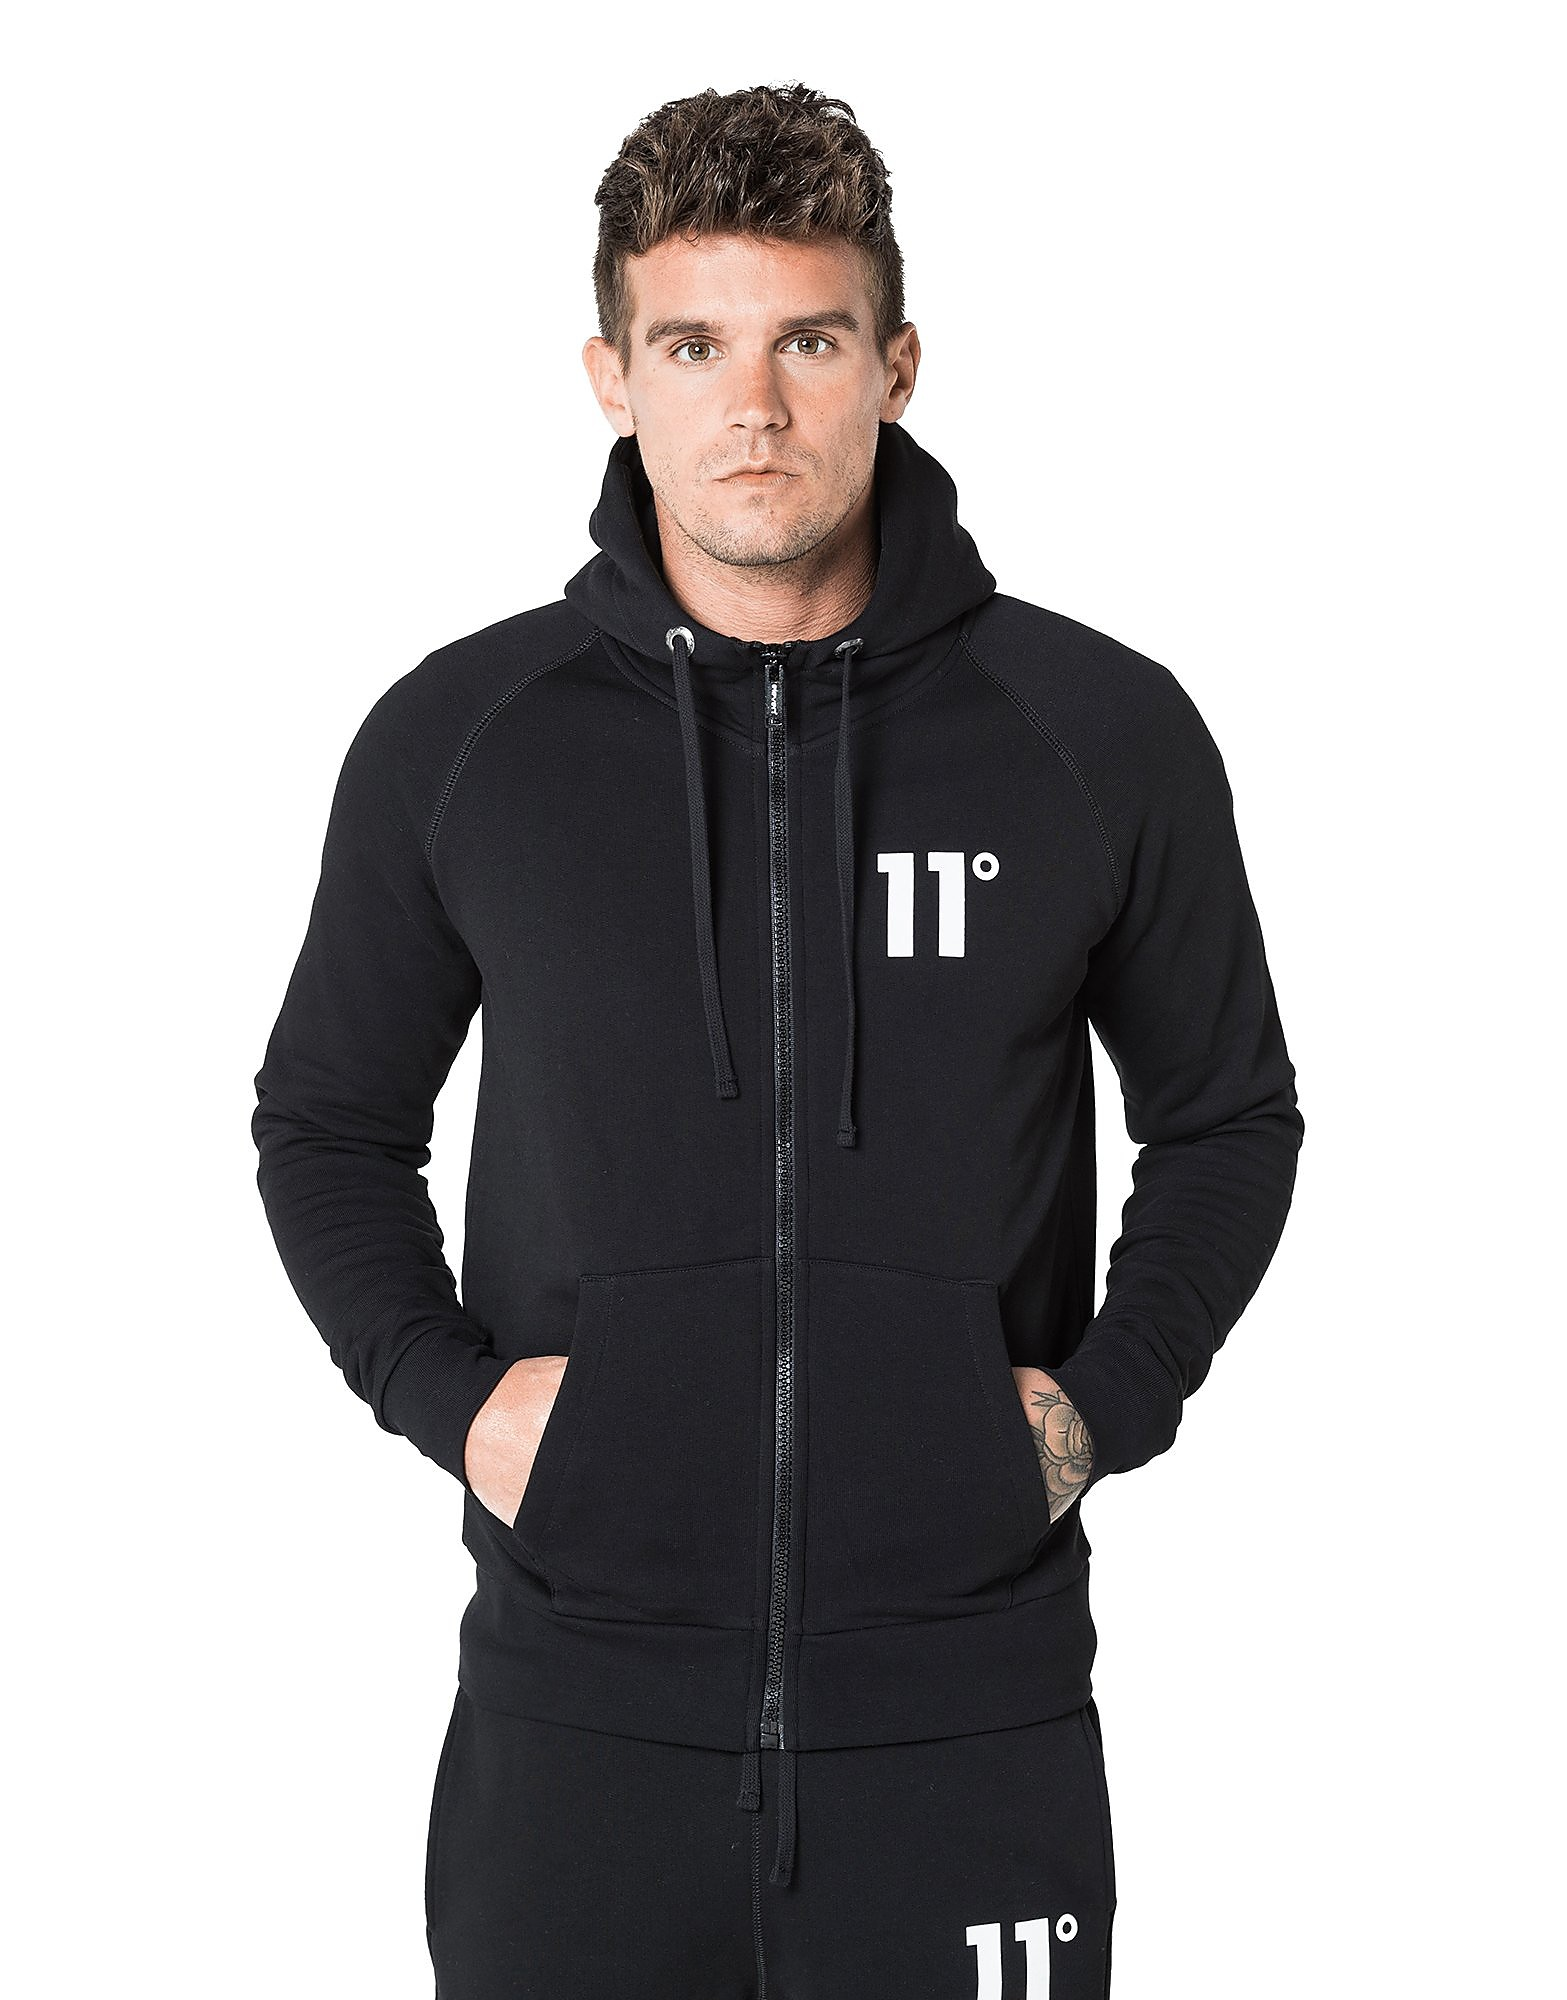 Image de 11 Degrees Sweat Core Homme - Black, Black